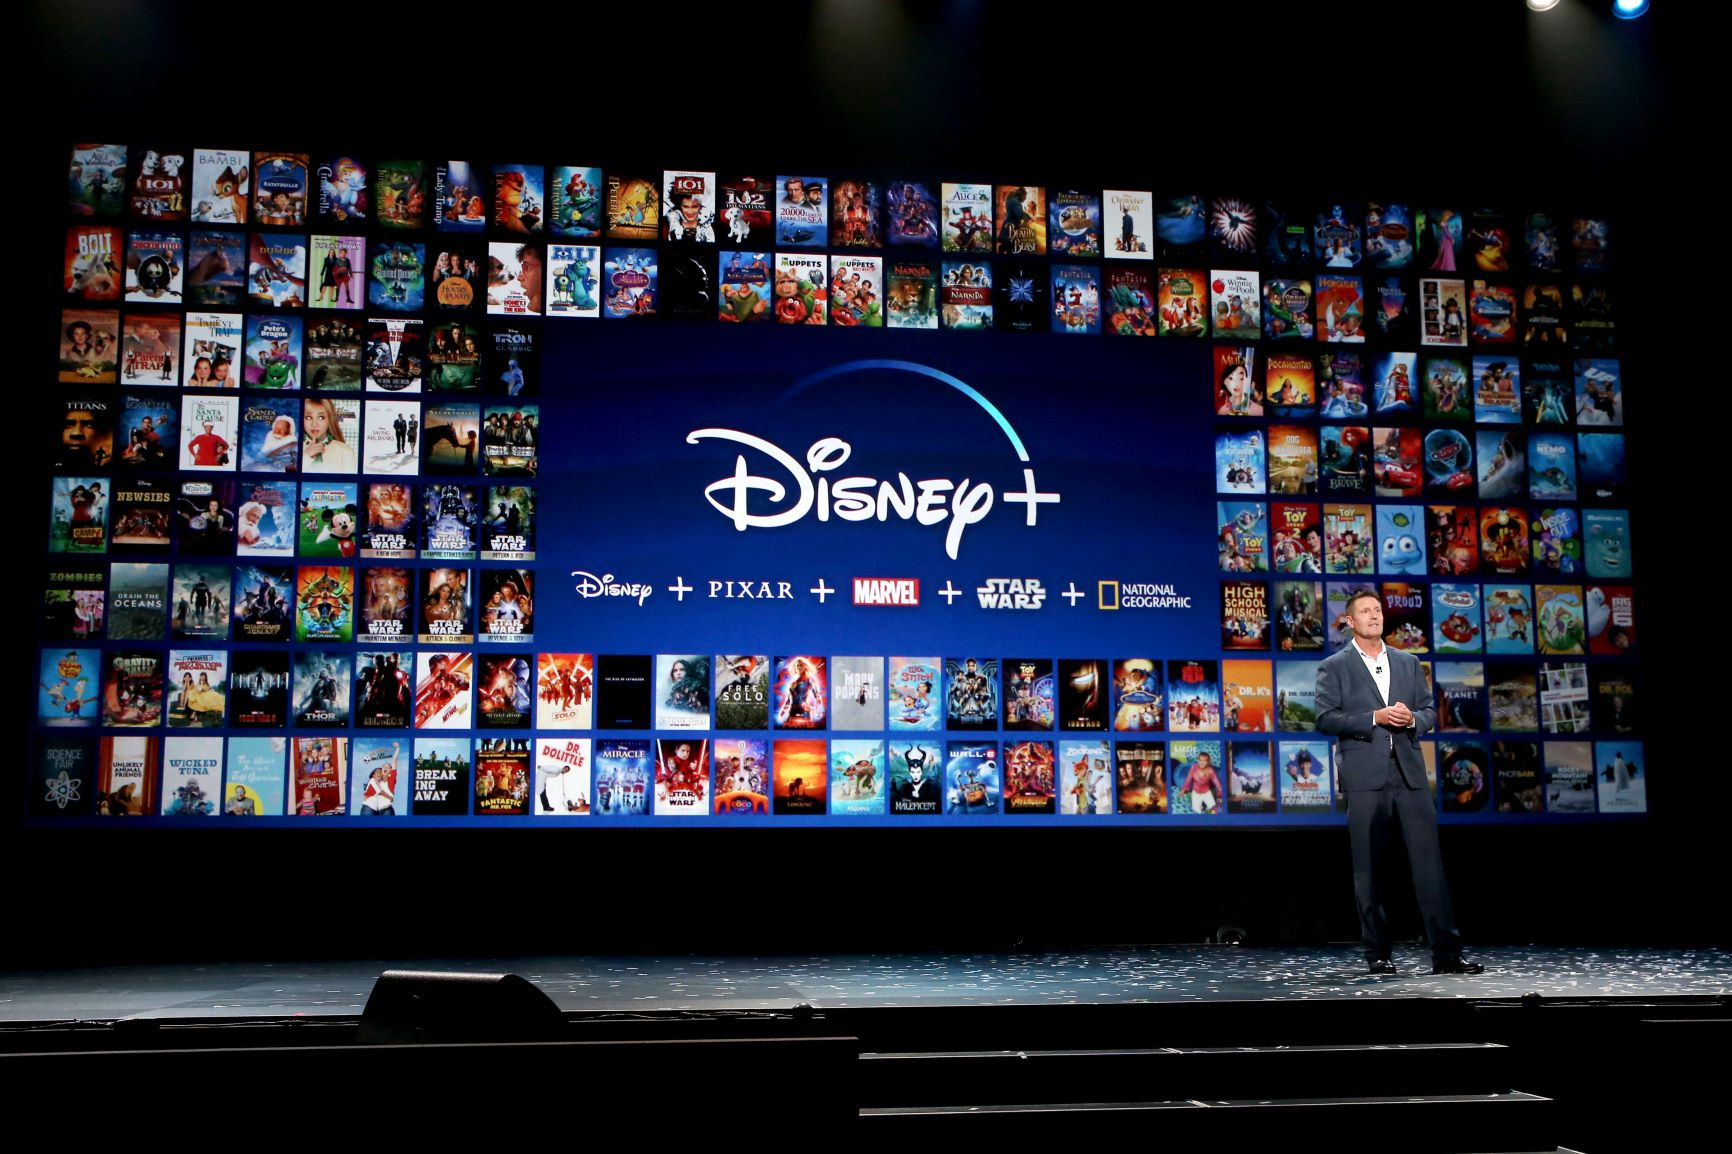 Disney's Mulan to release for streaming